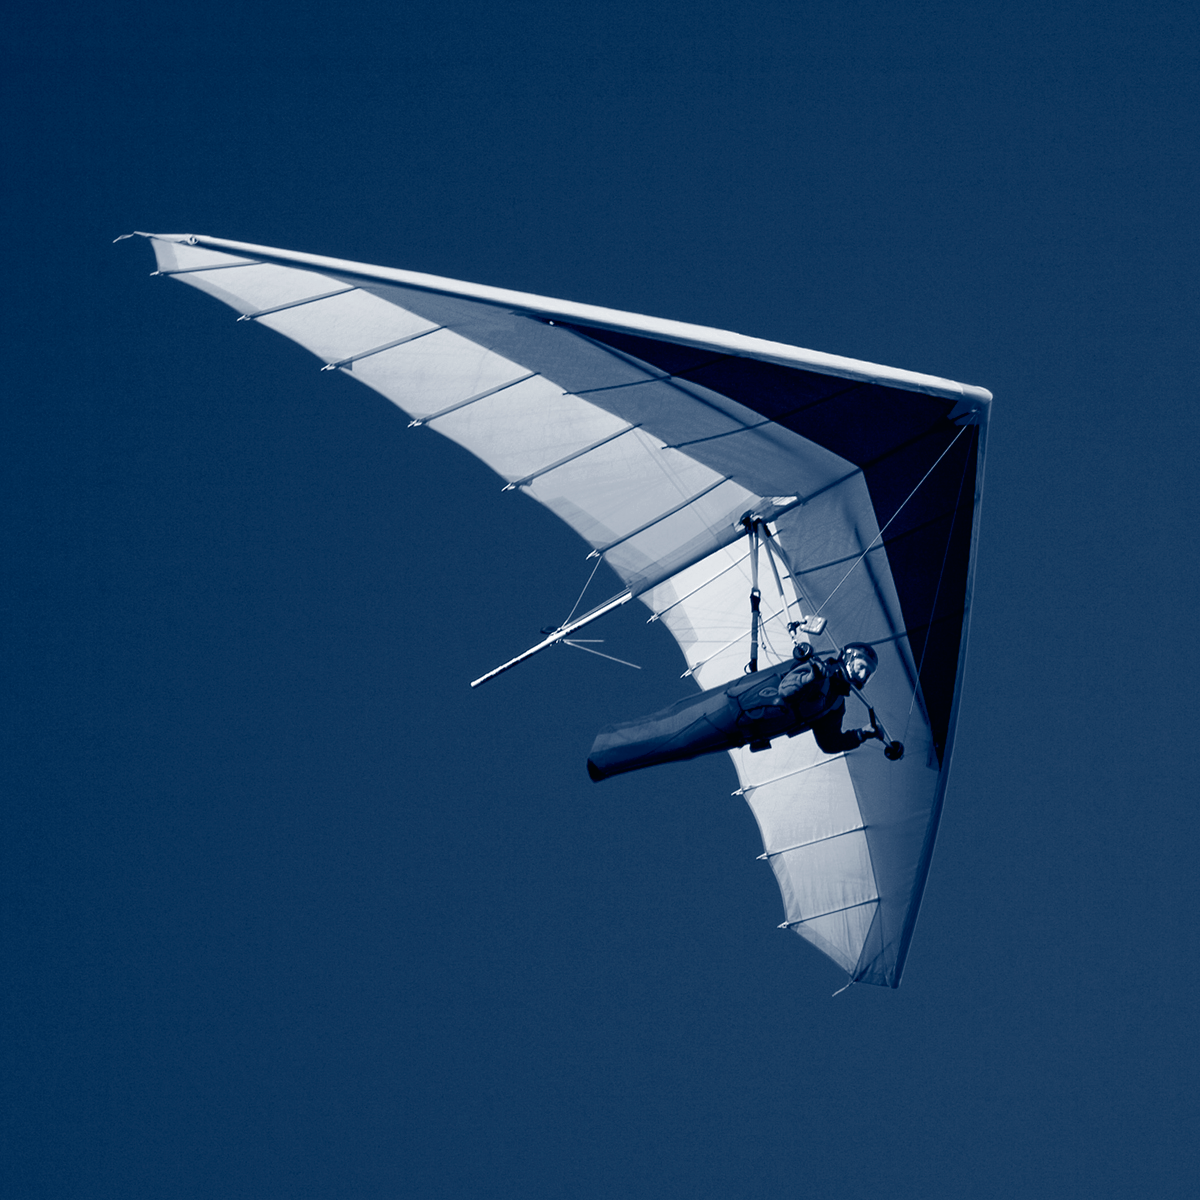 hang glider in the air